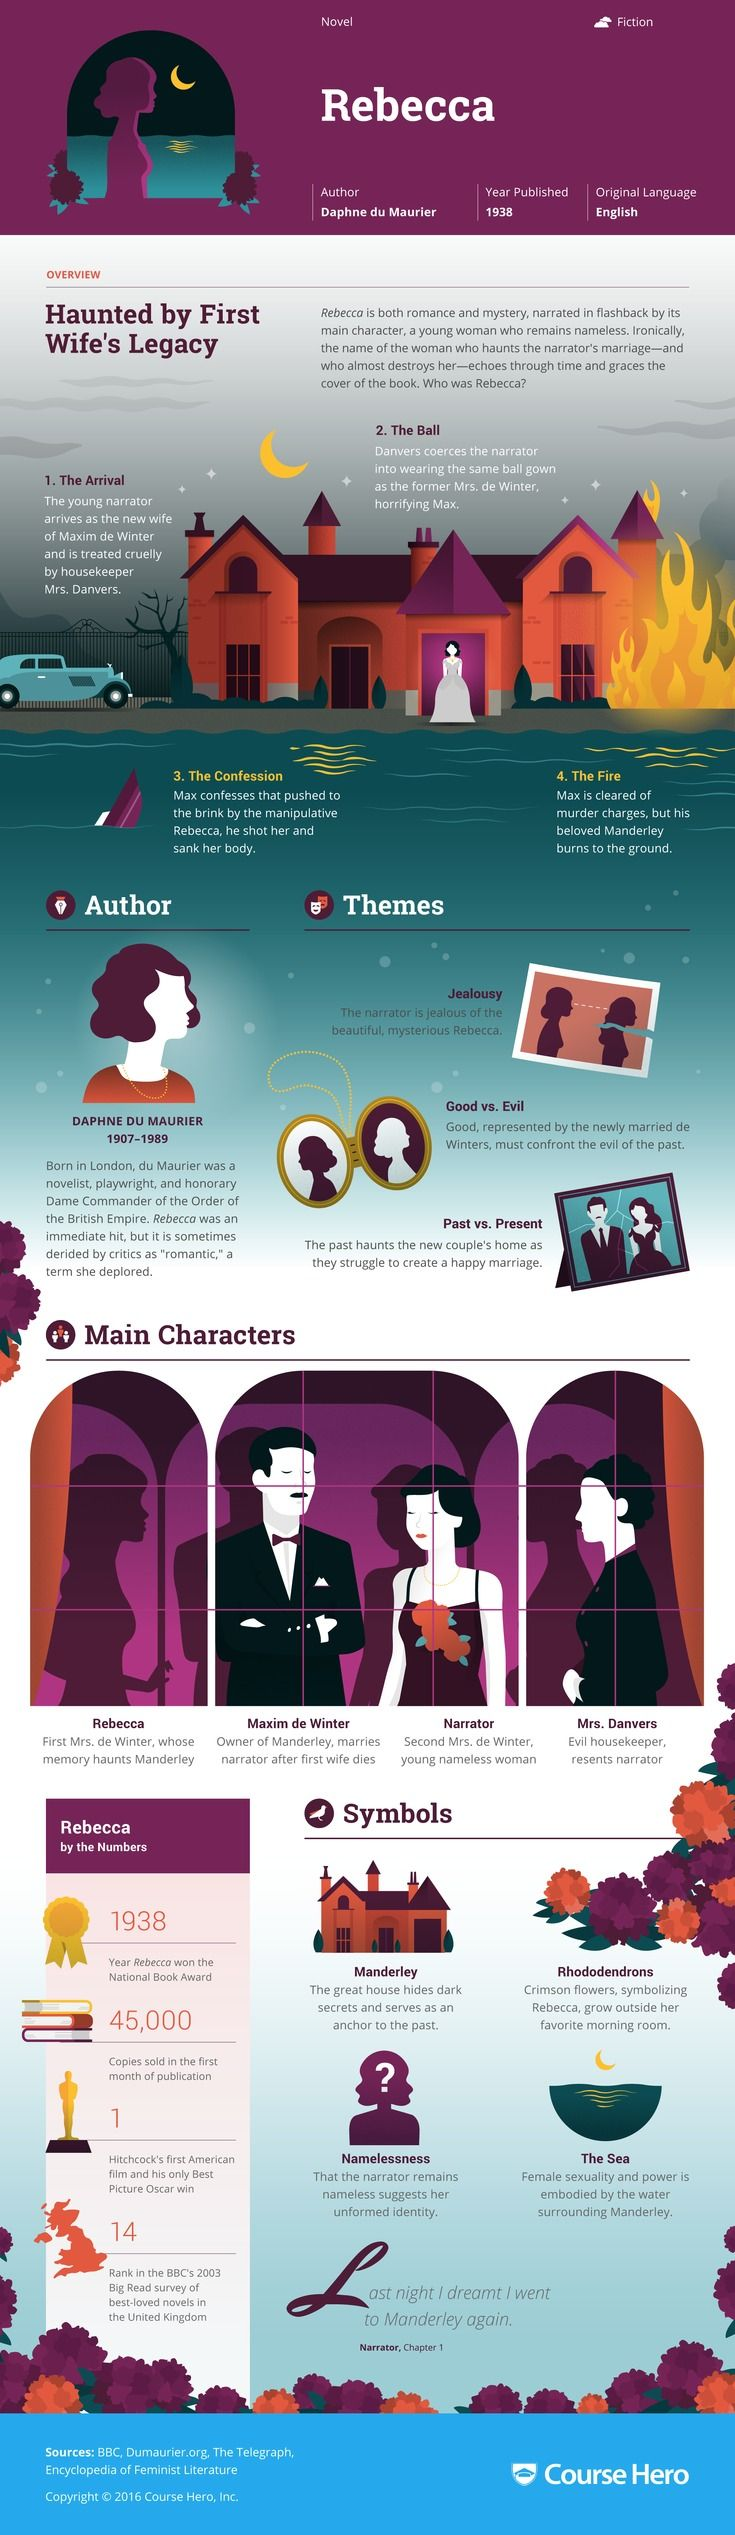 This 'Rebecca' infographic from Course Hero is as awesome as it is helpful. Check it out!